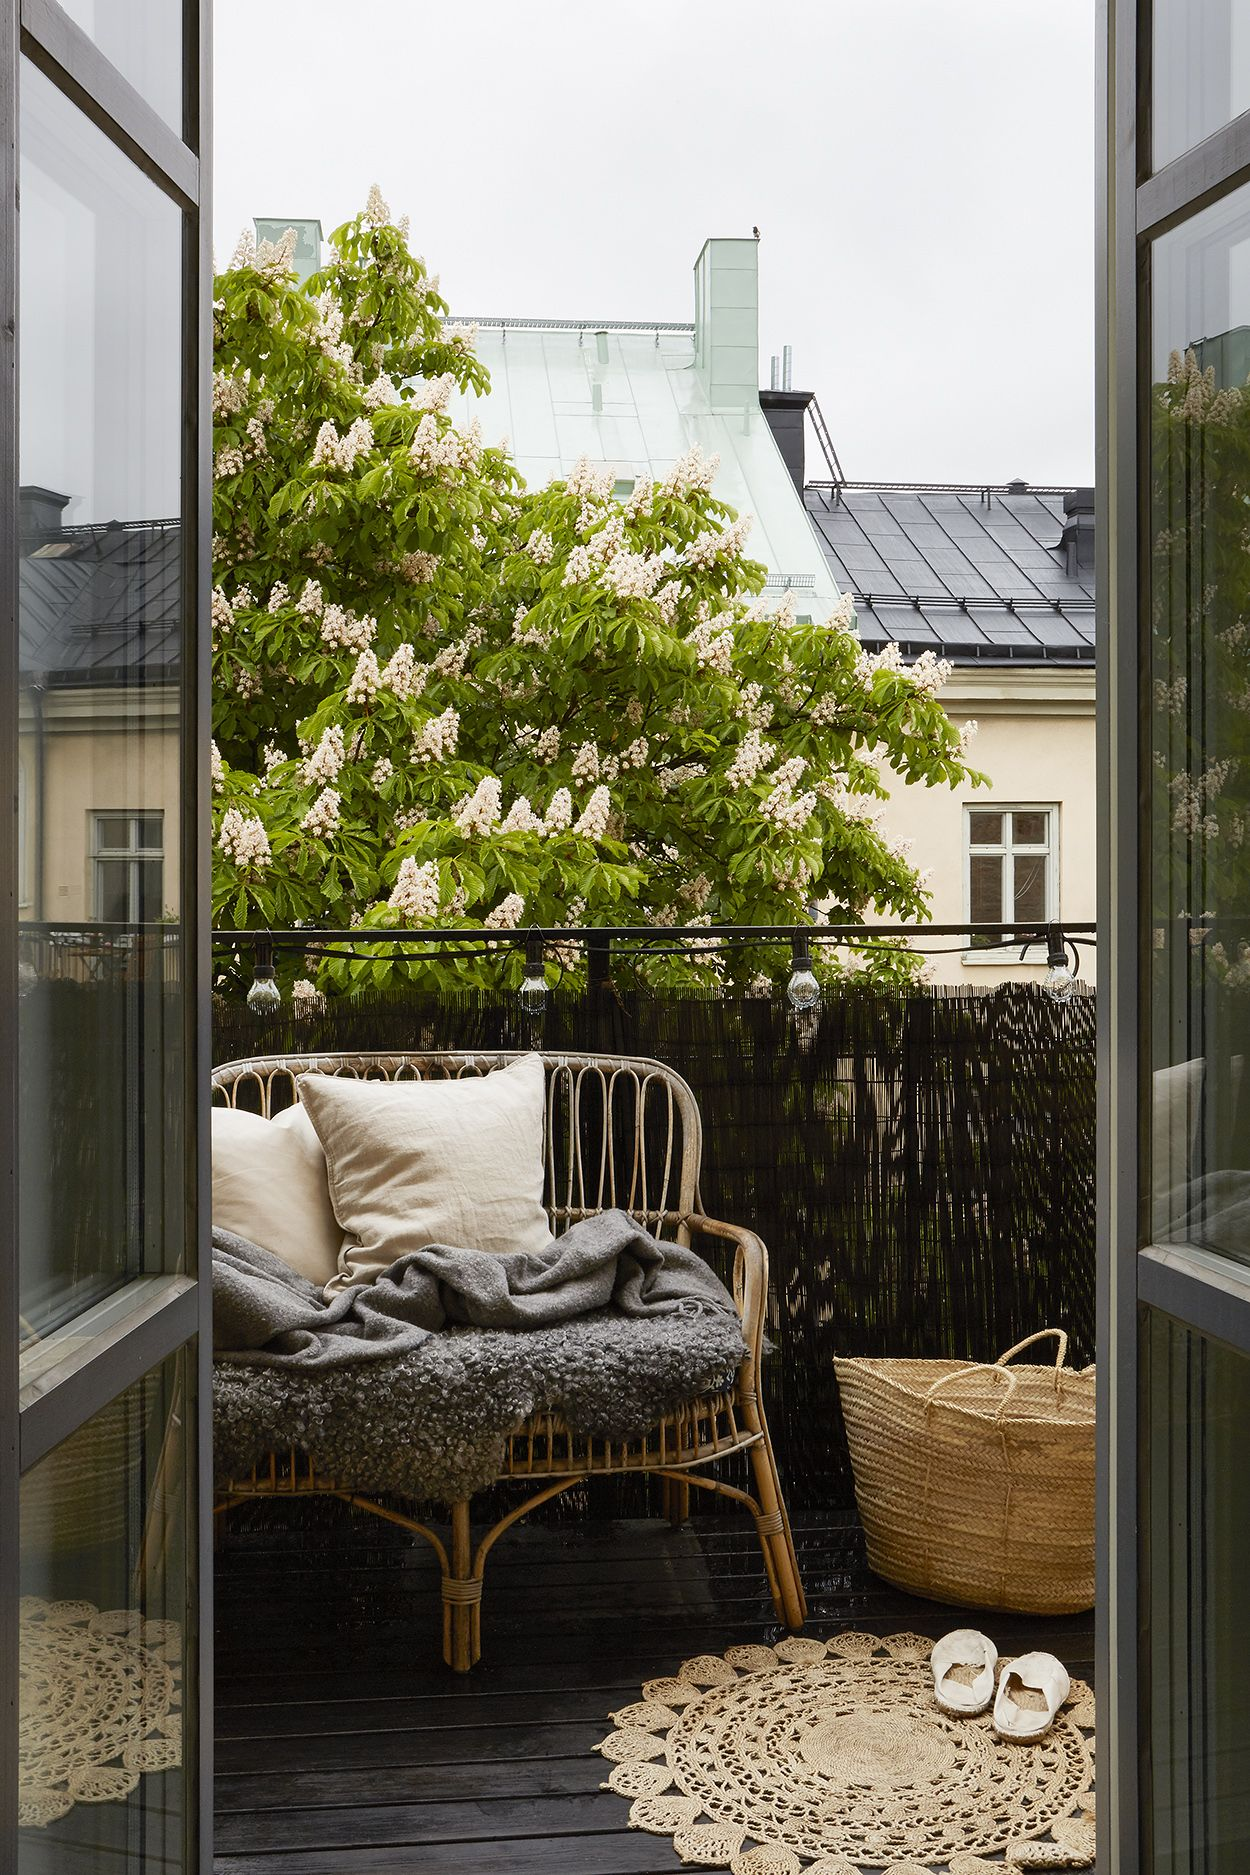 Interior design livingroom balcony upplandsgatan 25 b 4 for Balcony interior design